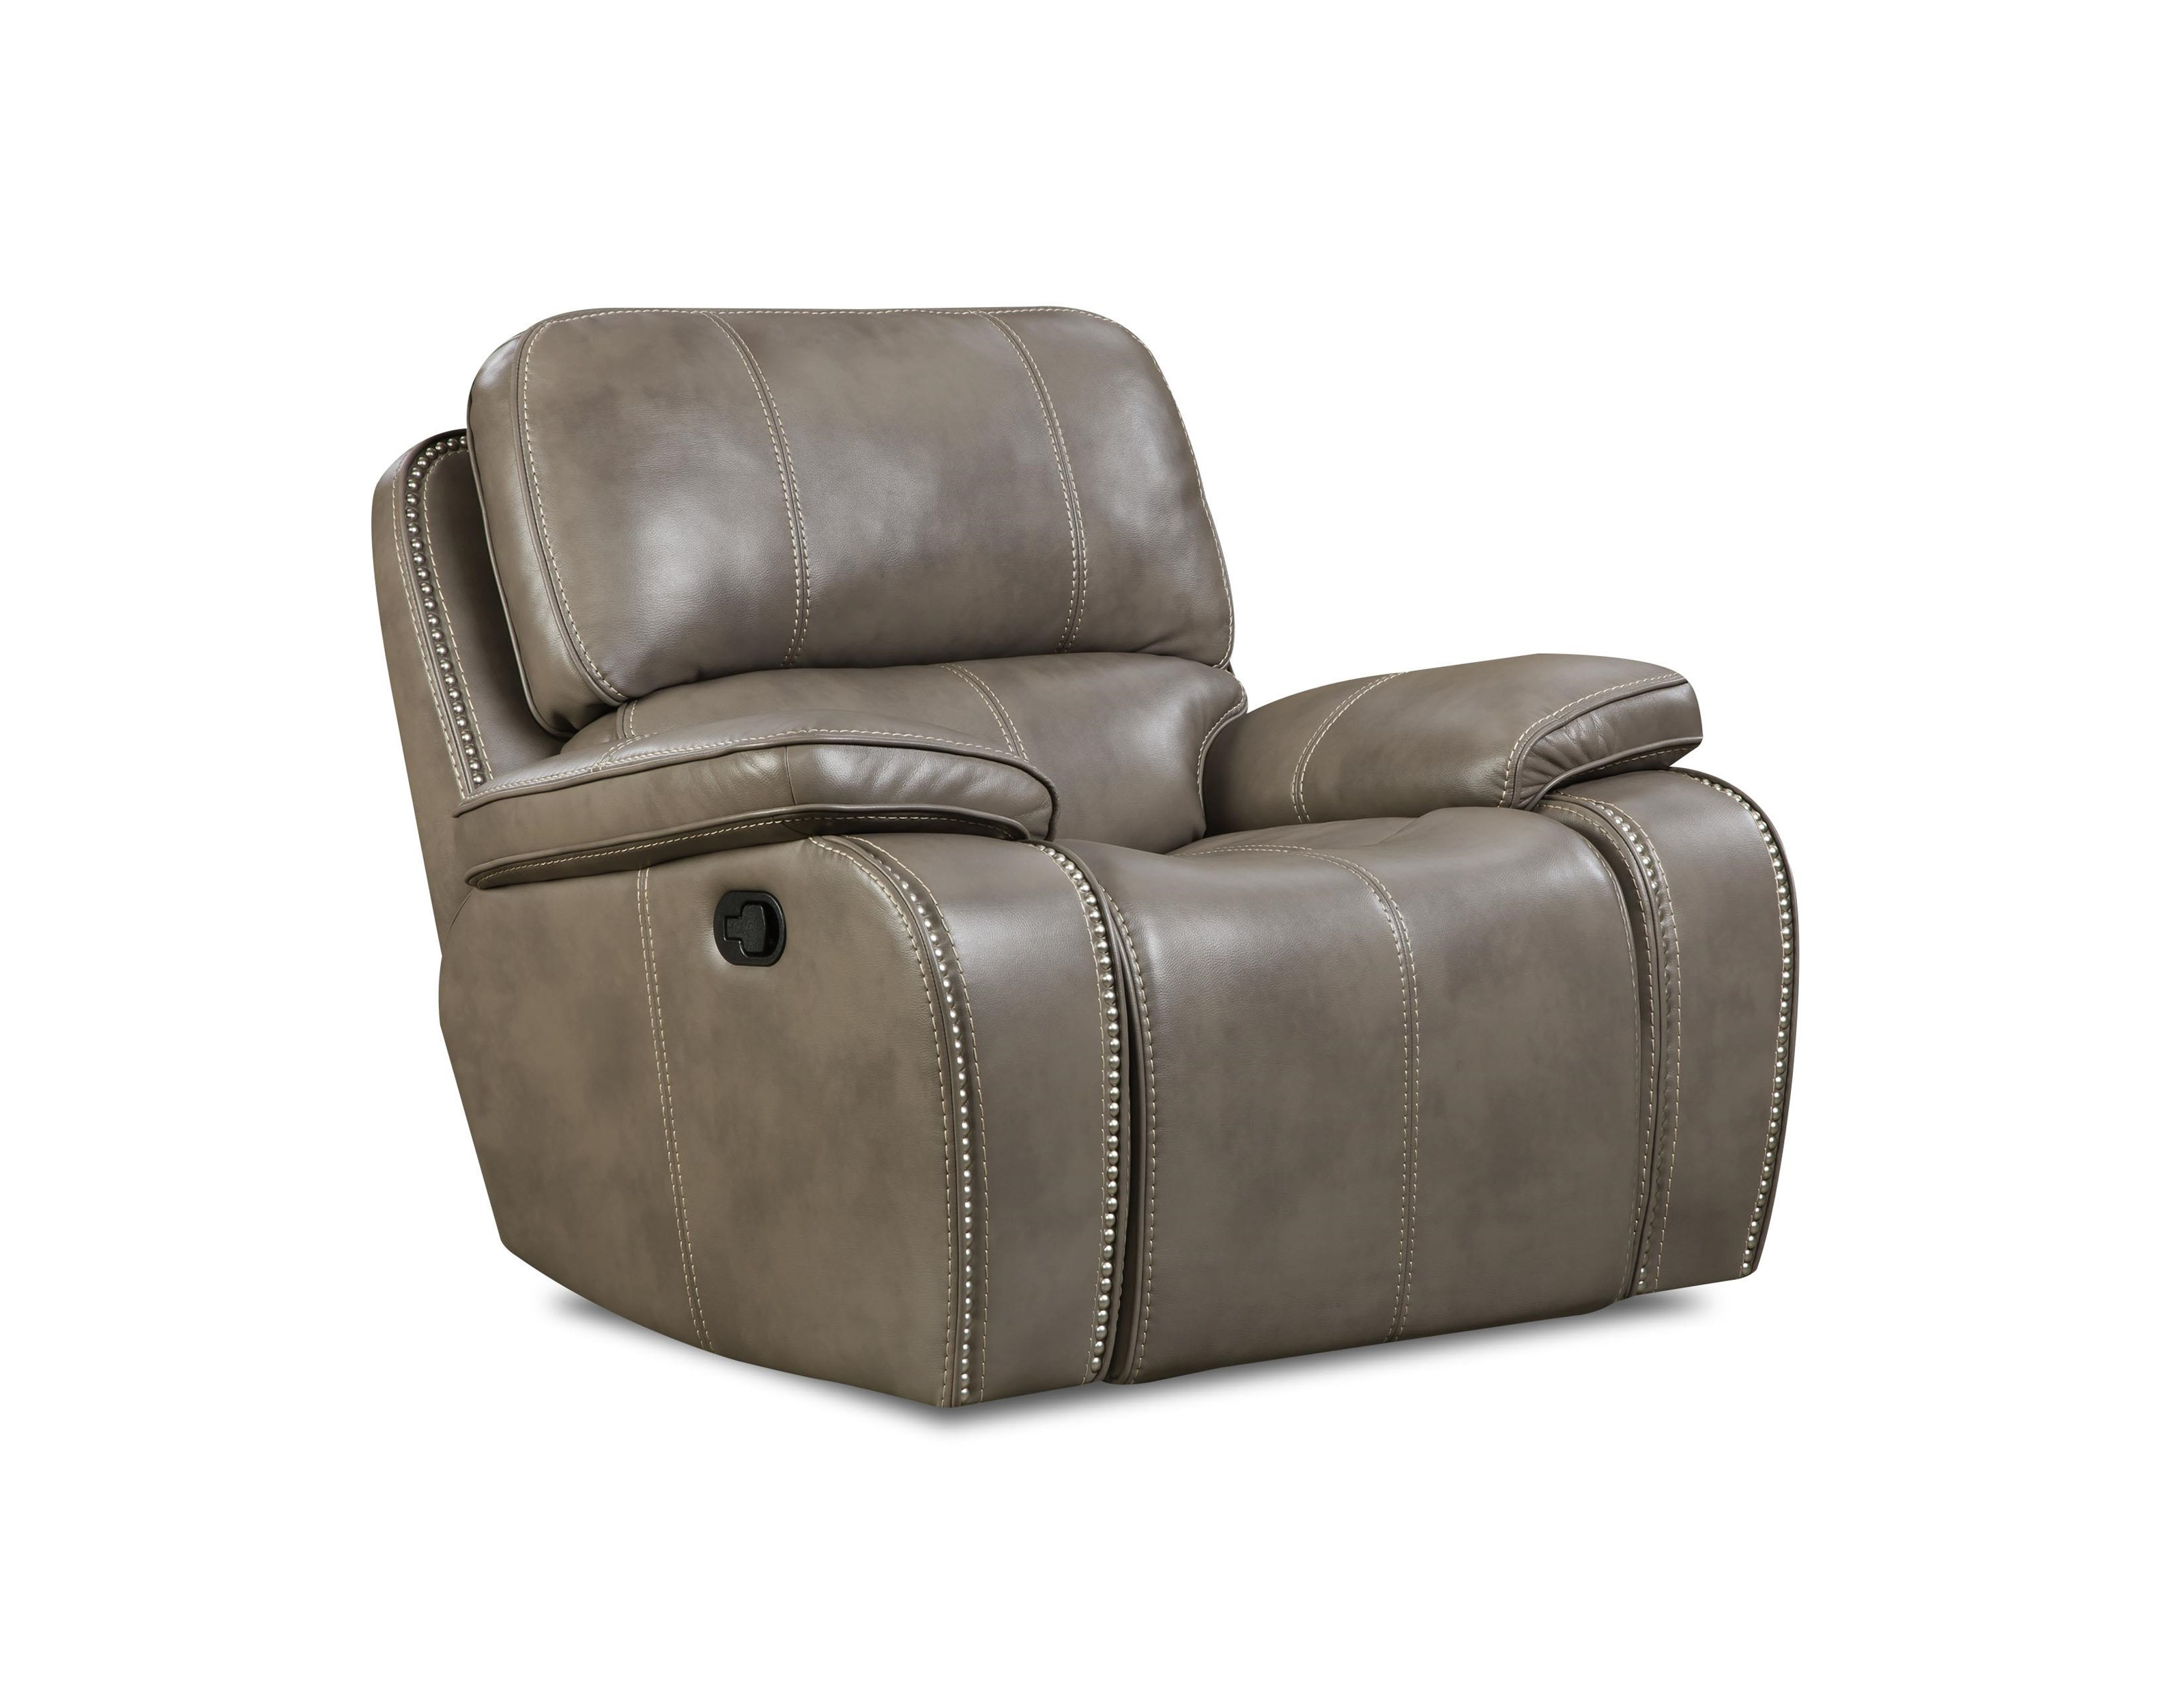 Corinthian Jamestown Smoke Glider Recliner - Item Number: 88907-10G